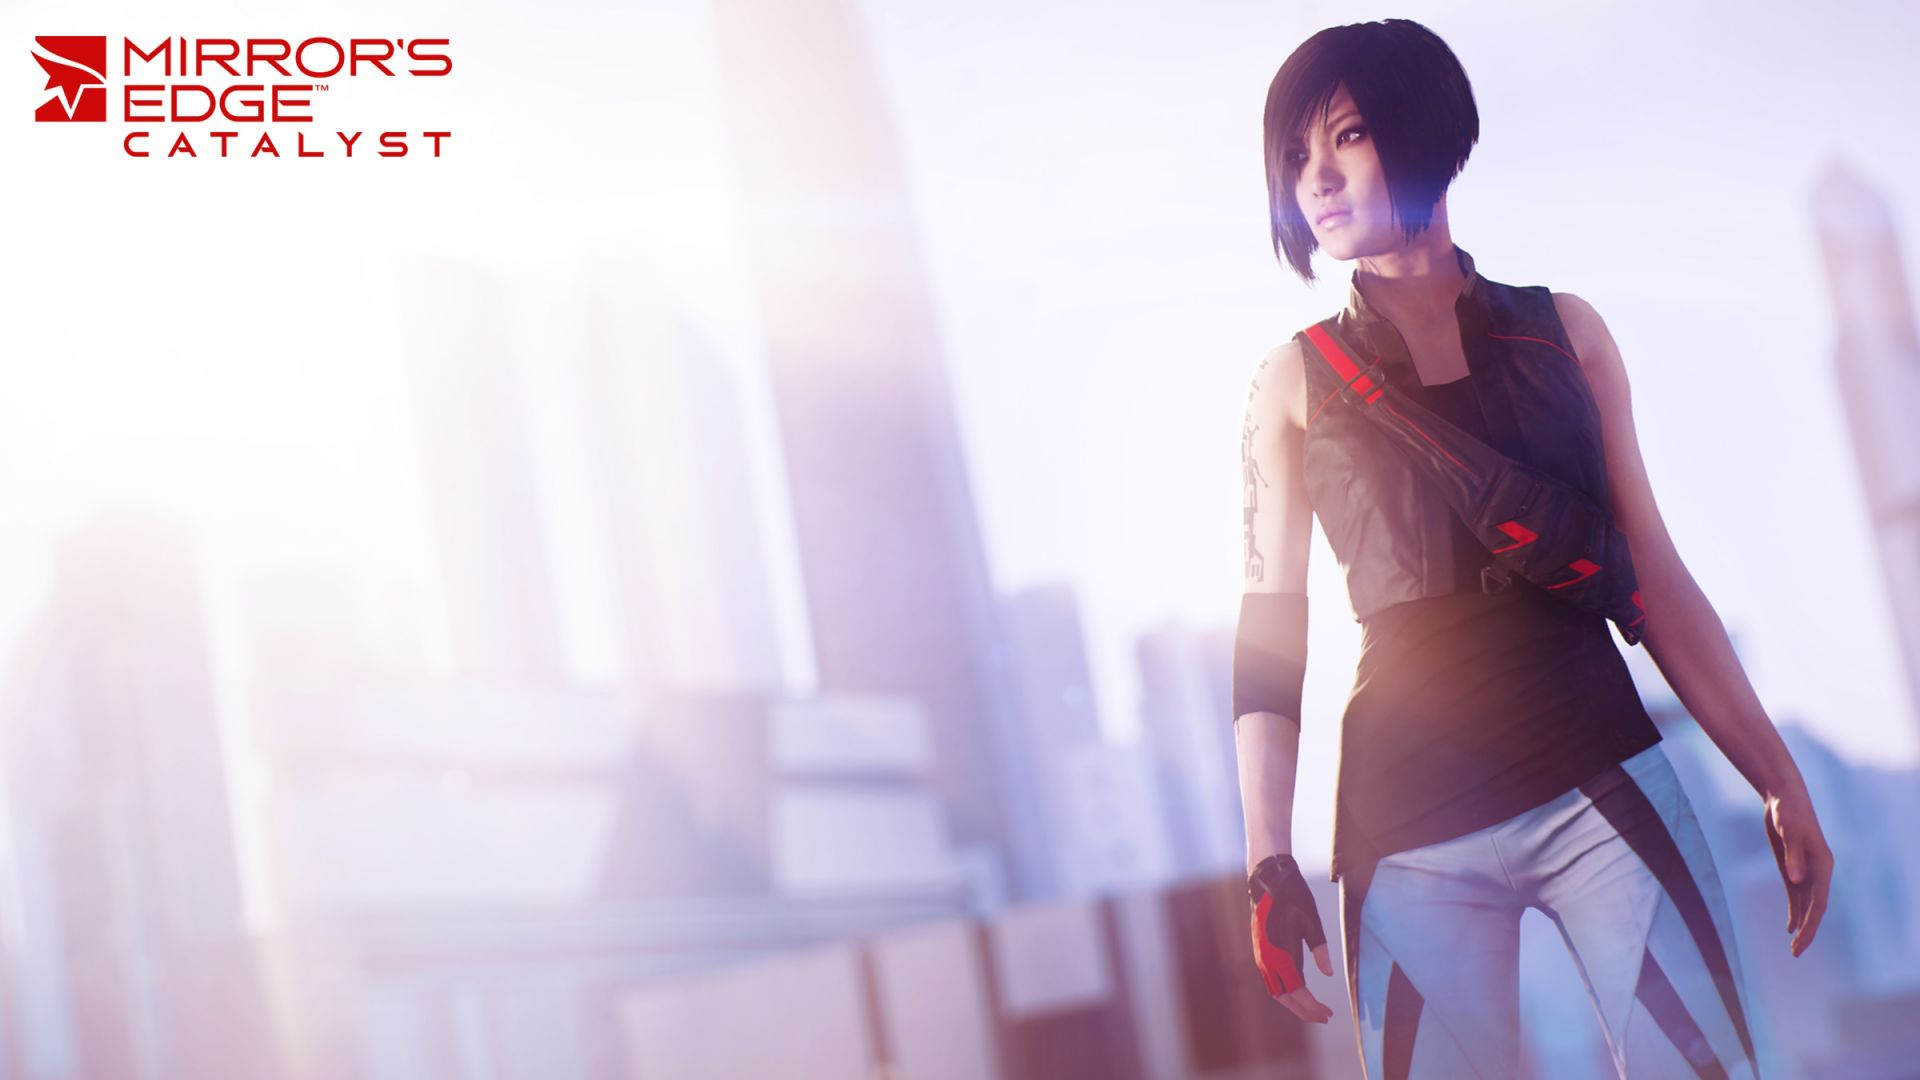 Wallpaper mirror 39 s edge catalyst best games game for Mirror xbox one to pc